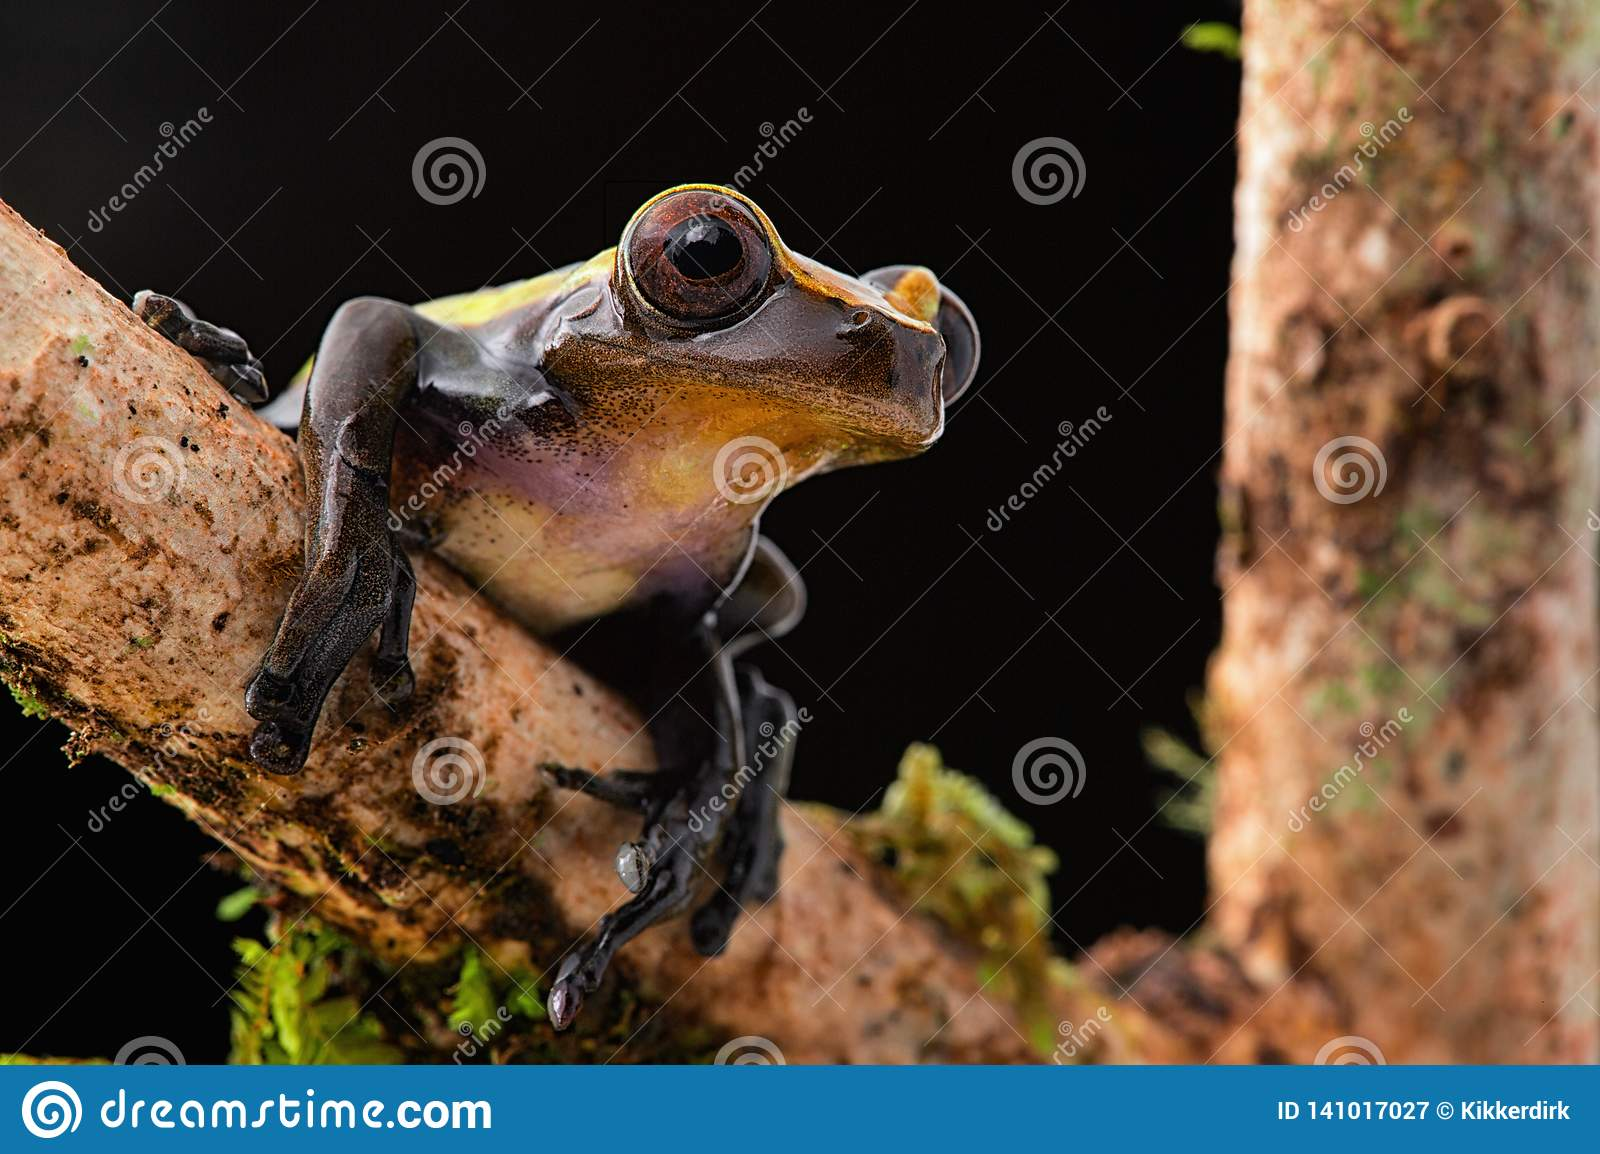 Tropical tree frog on branch at night in Amazon rain forest